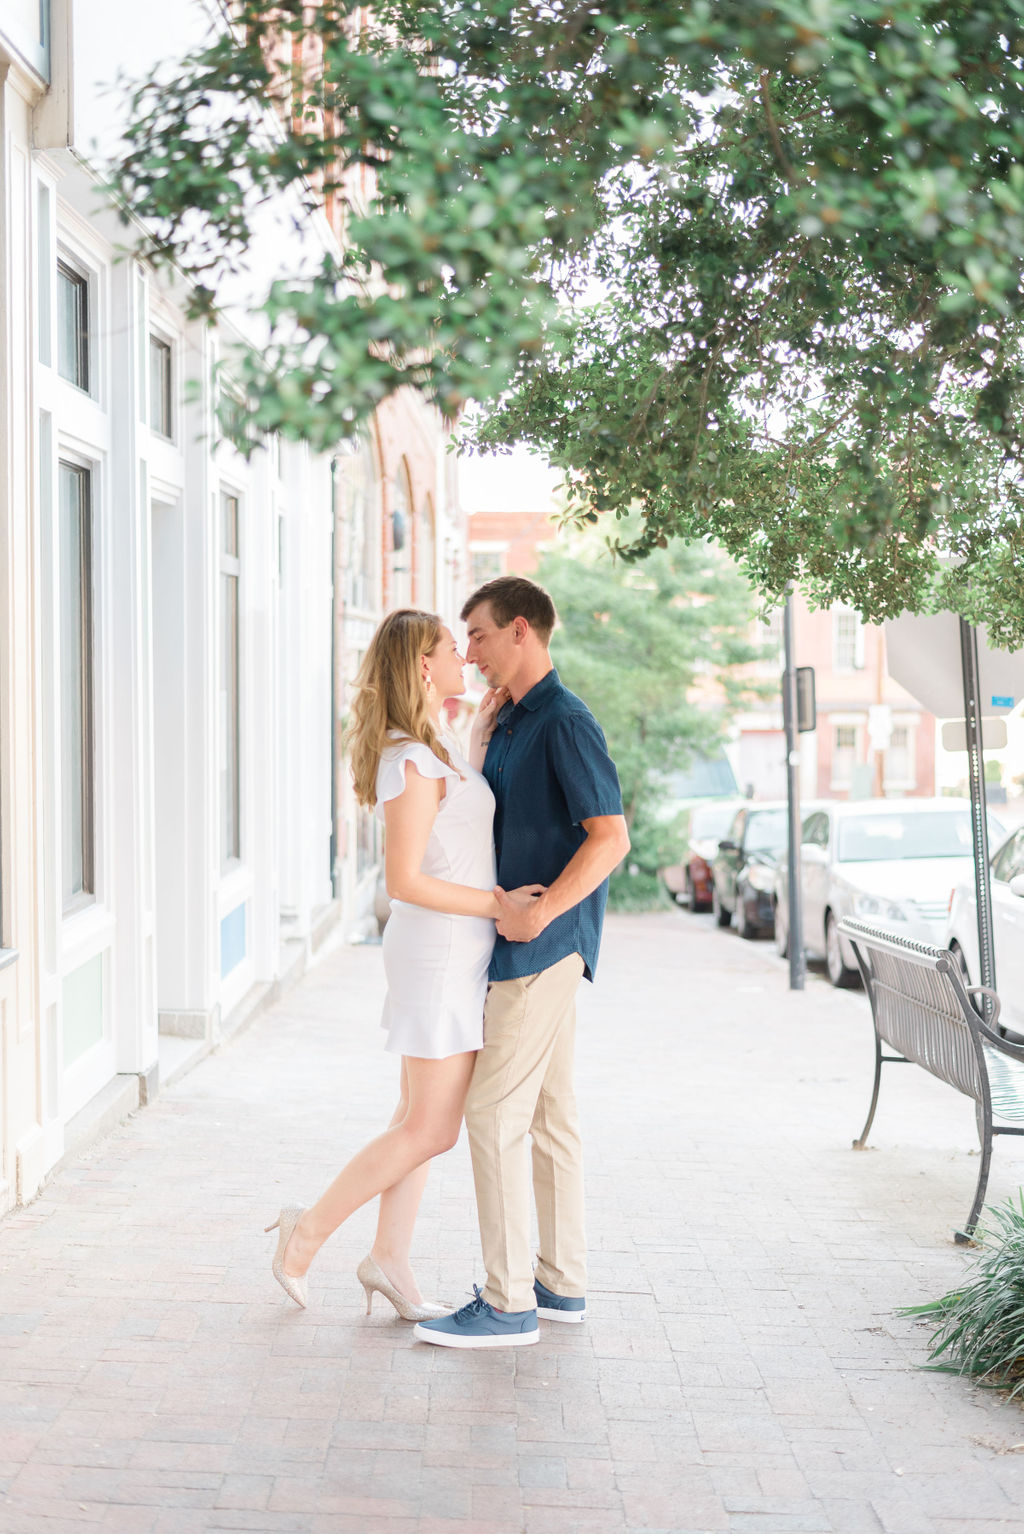 Playful and Relaxed Virginia Engagement Session Sommer Rea Weddings & Portraits52